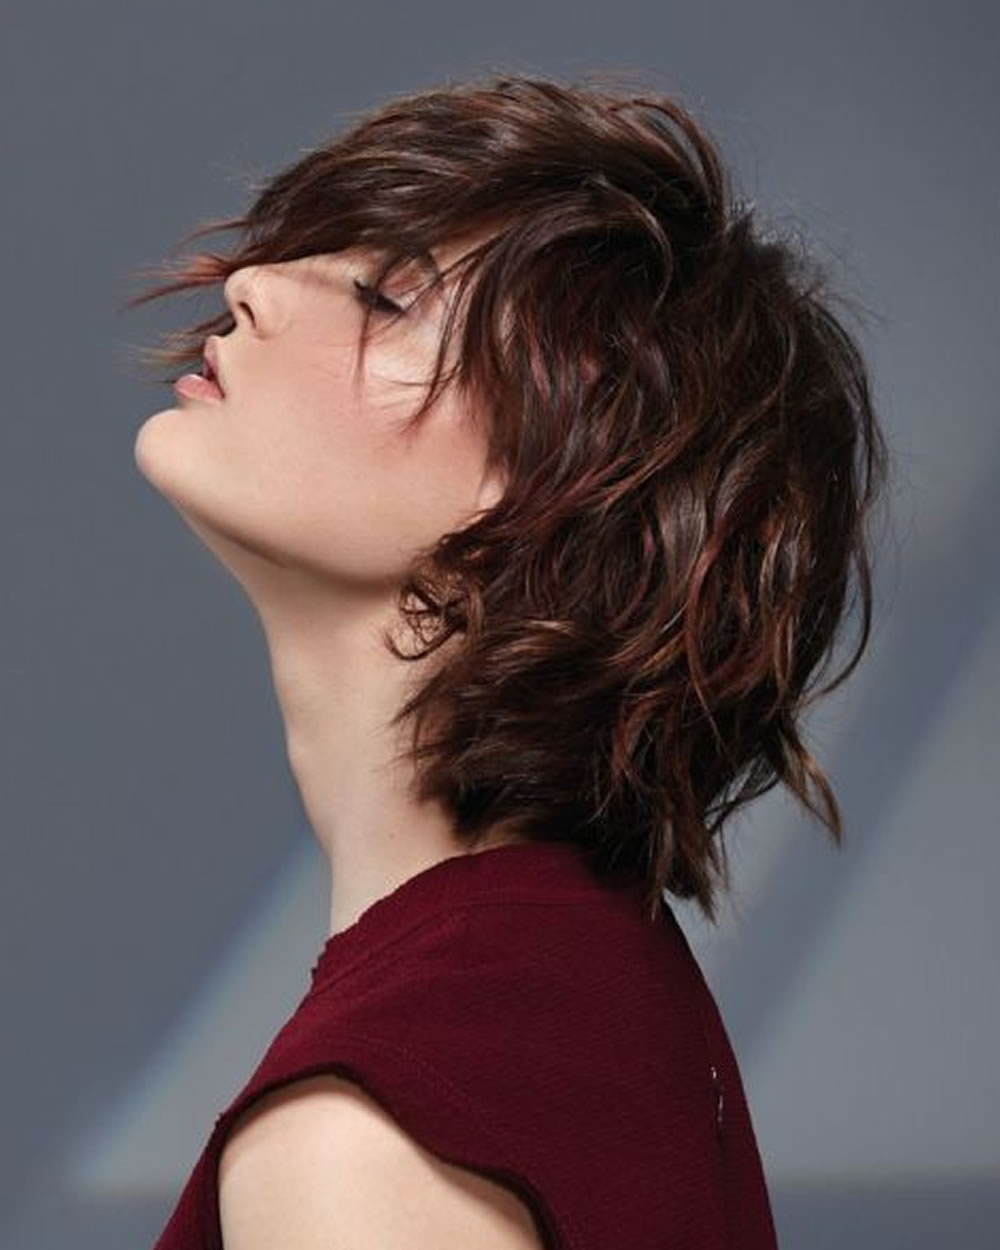 Hair Cuts : Bob Haircuts For Round Faces And Fine Hair Thick Female In Women Short Haircuts For Round Faces (View 7 of 25)